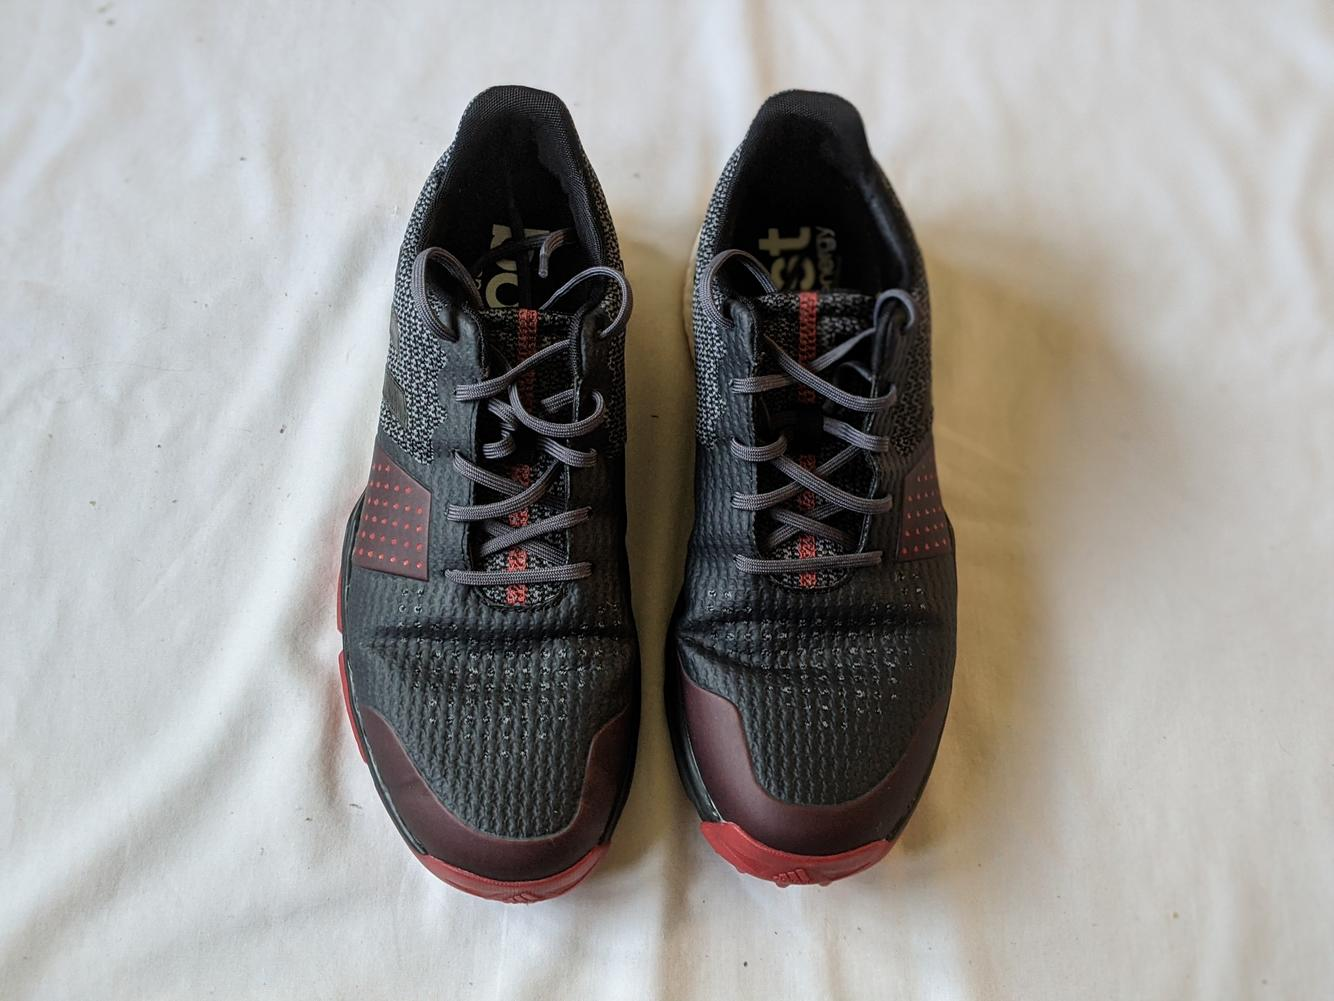 Used Size 9.5 (Women's 10.5) Adidas Golf Shoes